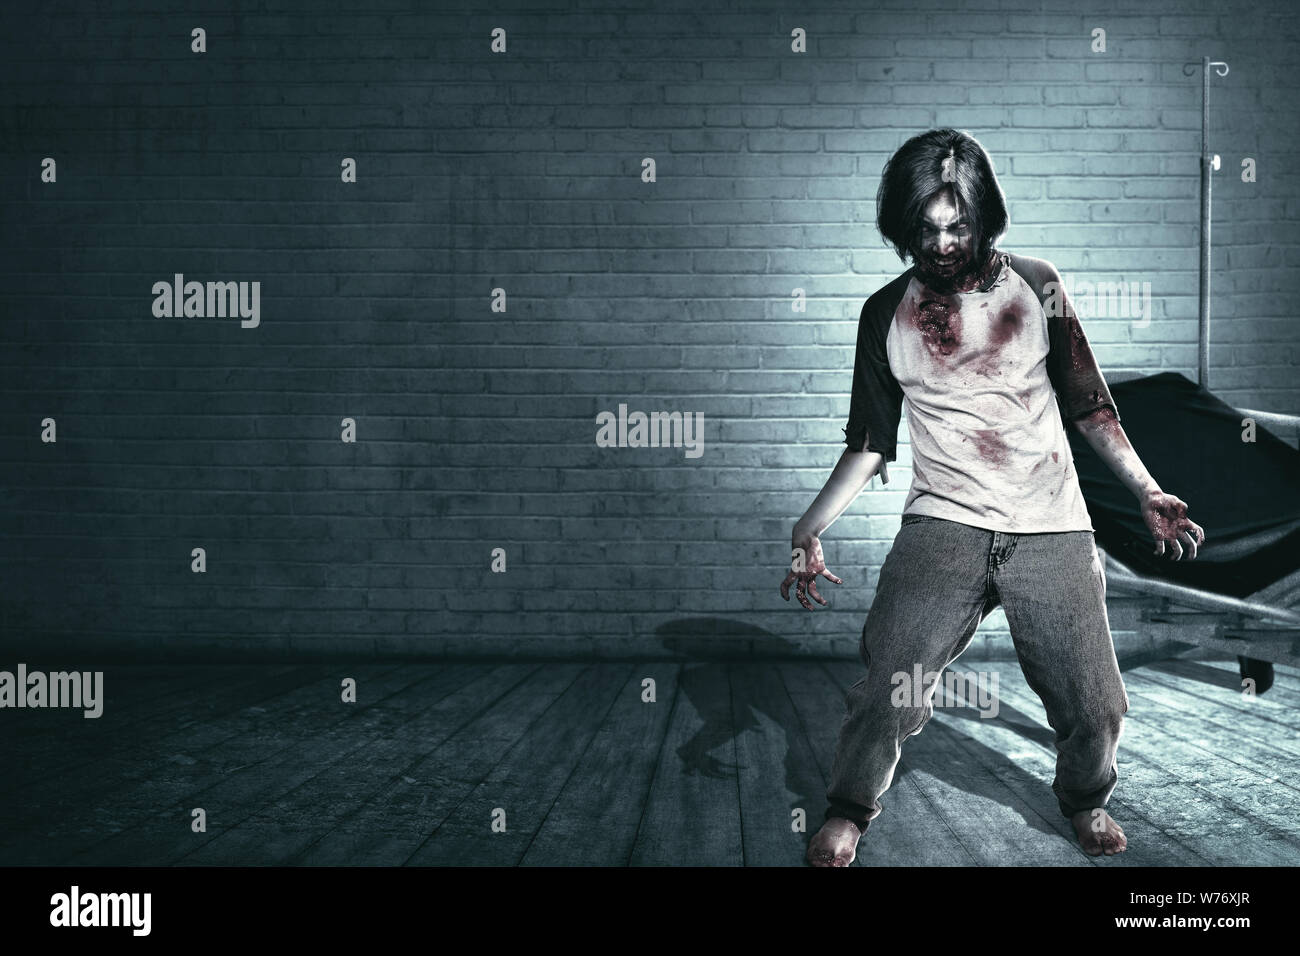 Scary zombies with blood and wound on his body haunted the abandoned hospital. Halloween concept Stock Photo